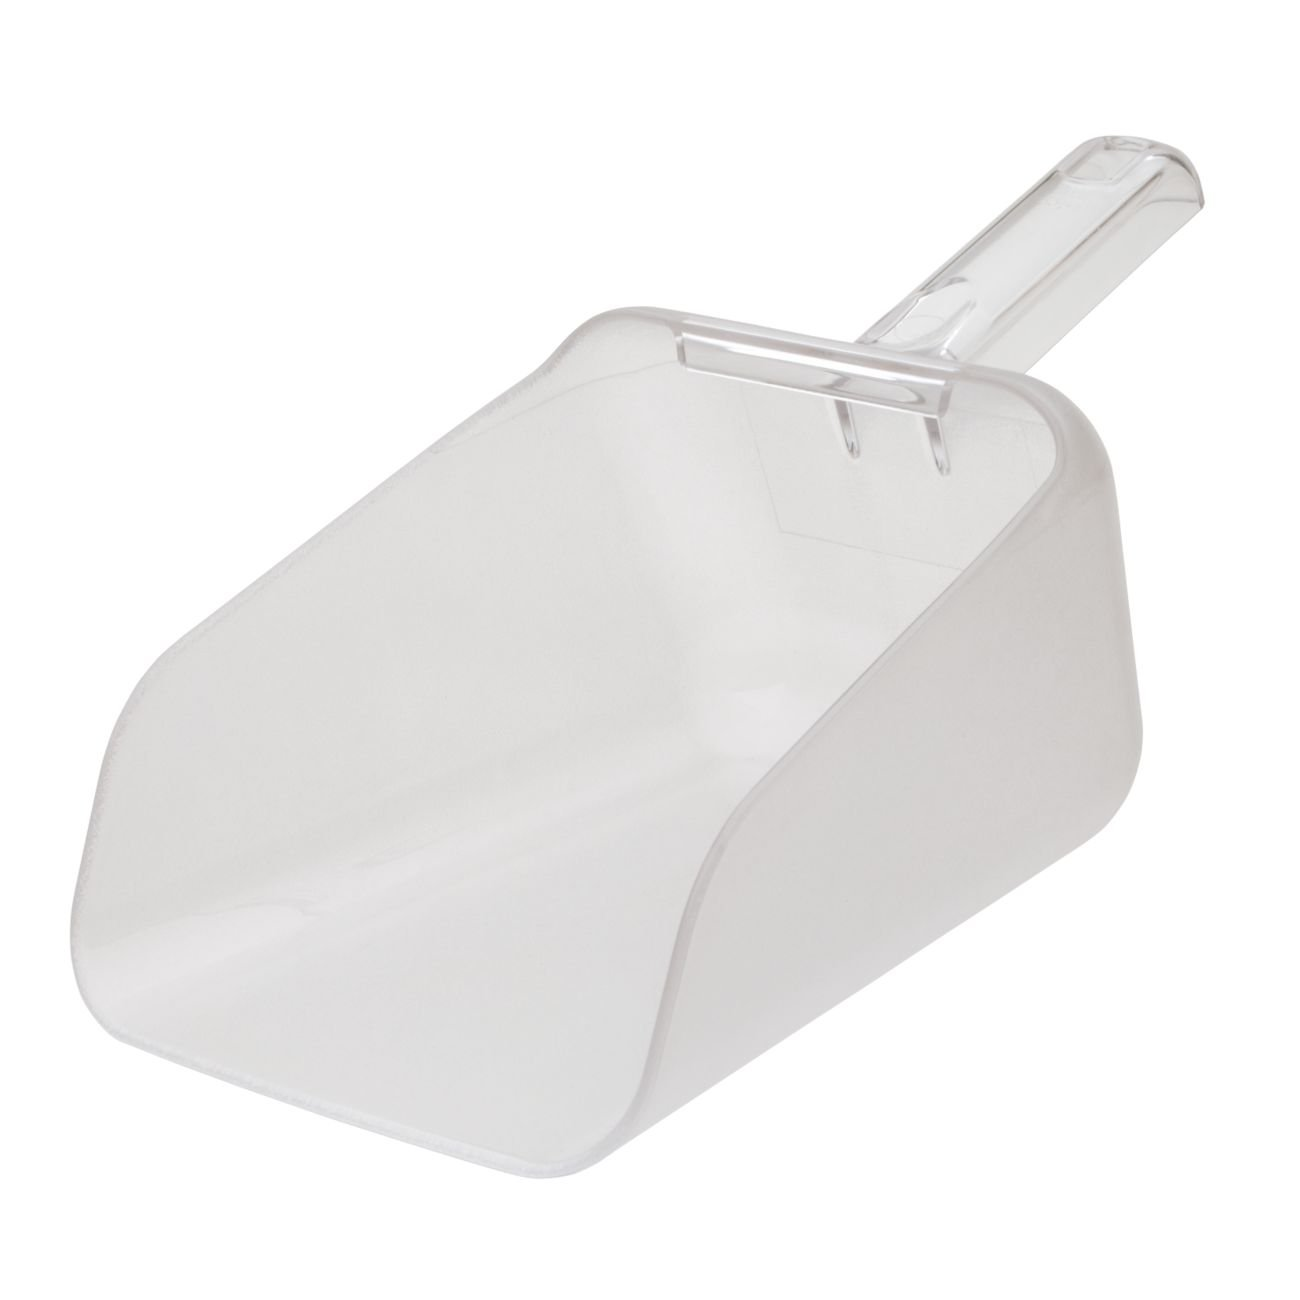 Rubbermaid Commercial Products FG9F7600CLR Bouncer Contour Scoop for Ingredient Bins, 64 oz, Clear (Pack of 6)